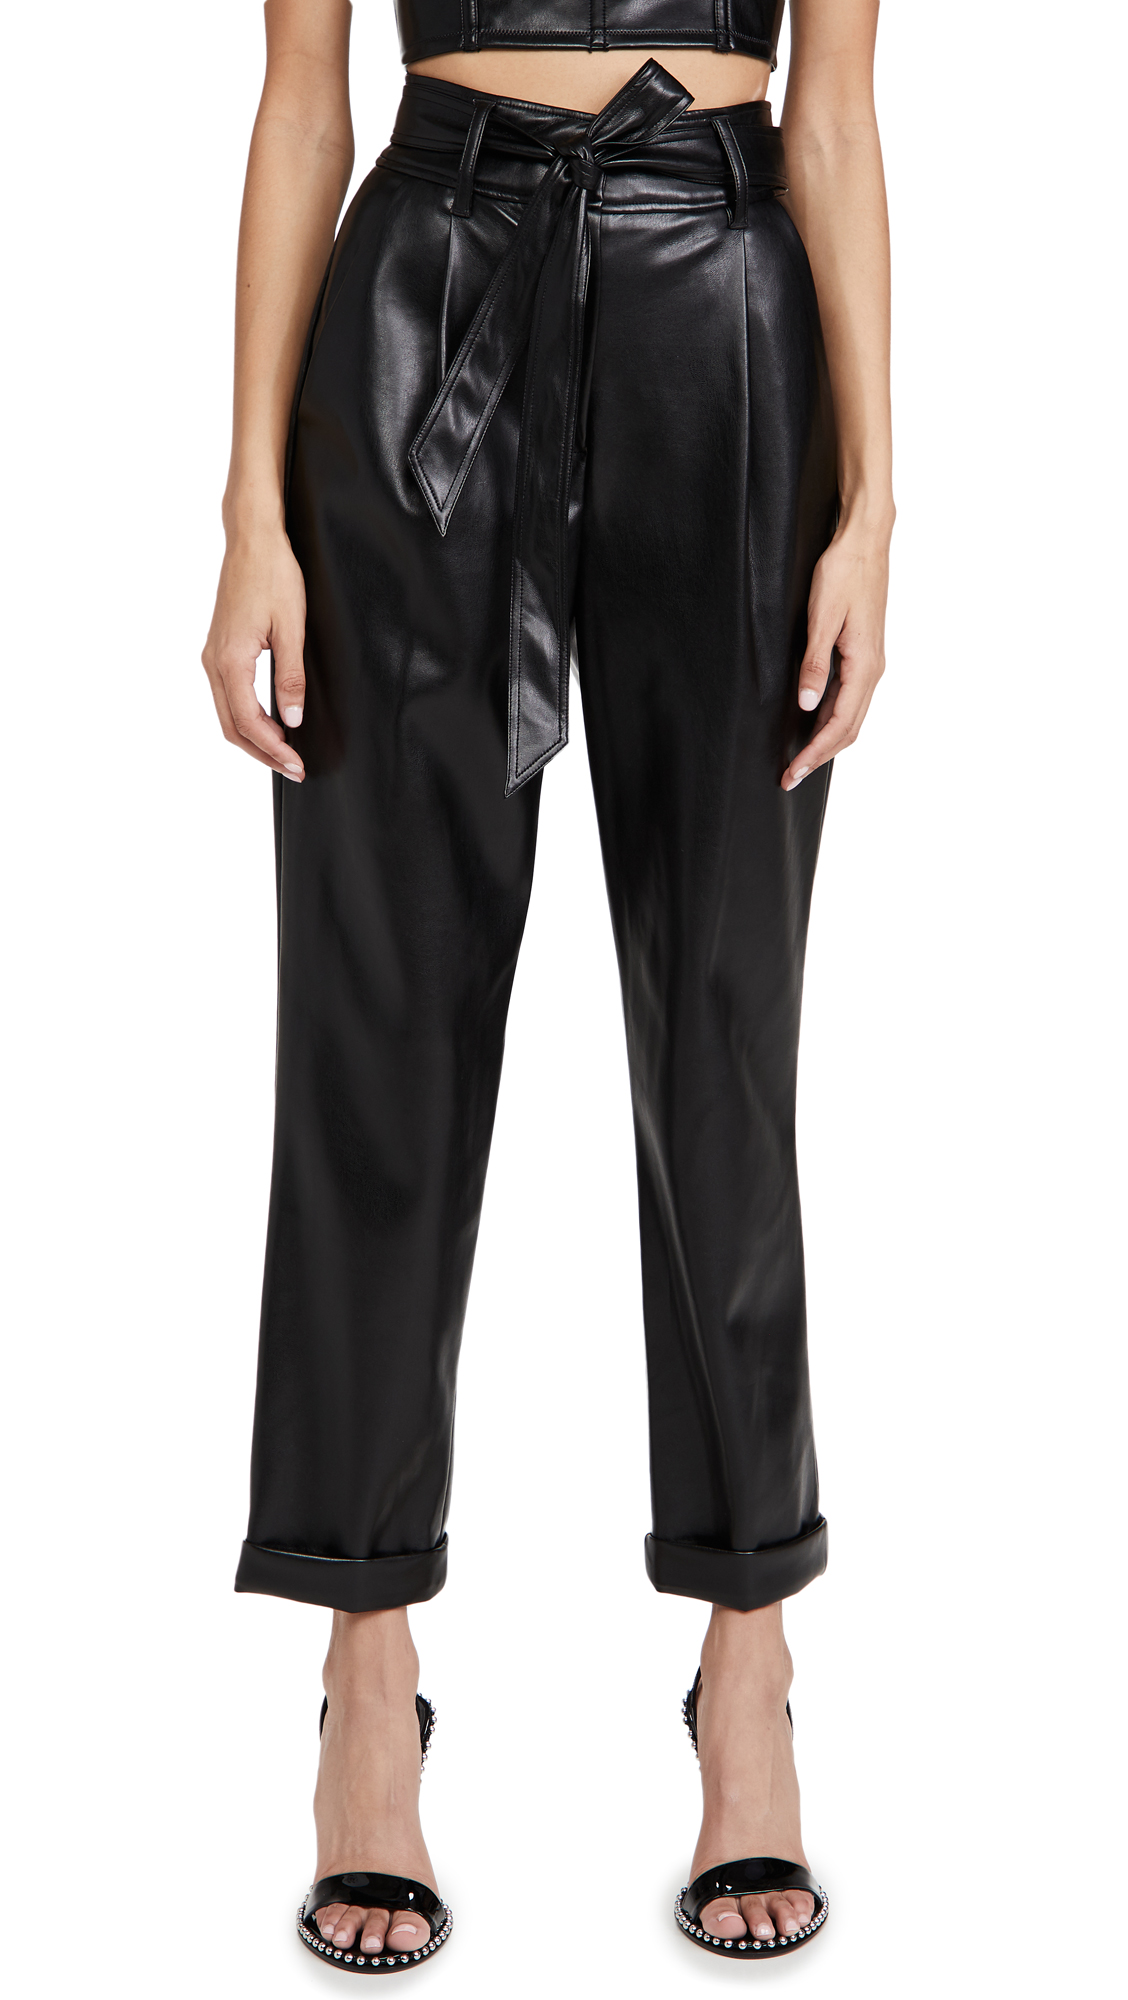 Fleur Du Mal Leathers VEGAN LEATHER HIGH WAIST BELTED PANTS